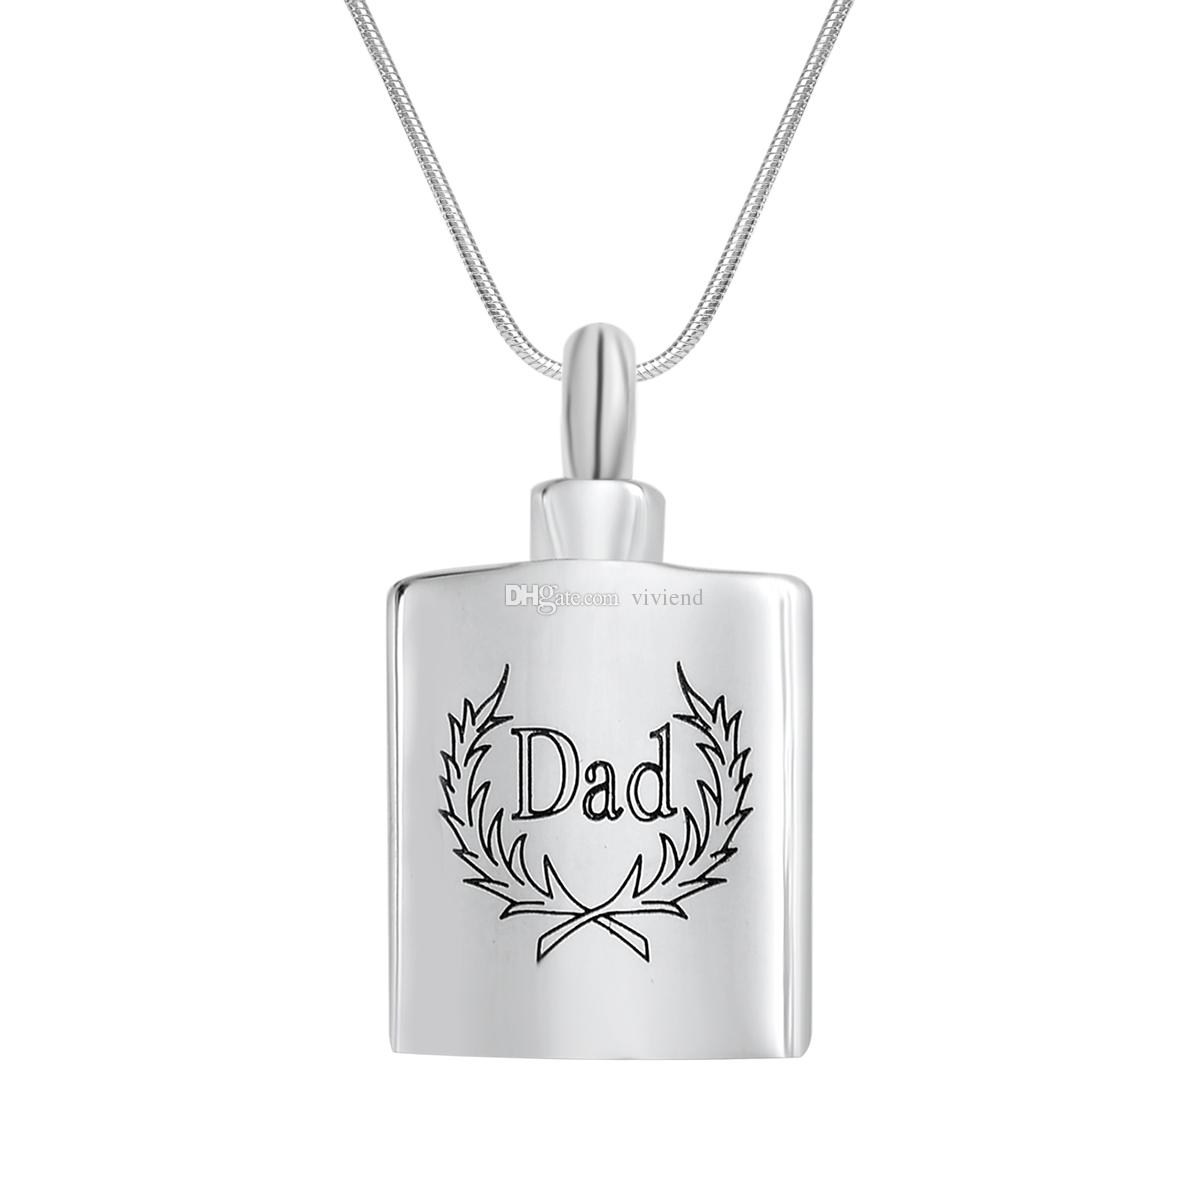 Wholesale Cremation Jewelry Dad With Olive Branch Bottle Urn Ashes Necklace Memorial Keepsake Pendant With Gift Bag And Funnel Unique Jewelry Best Friend Necklaces From Viviend 7 73 Dhgate Com